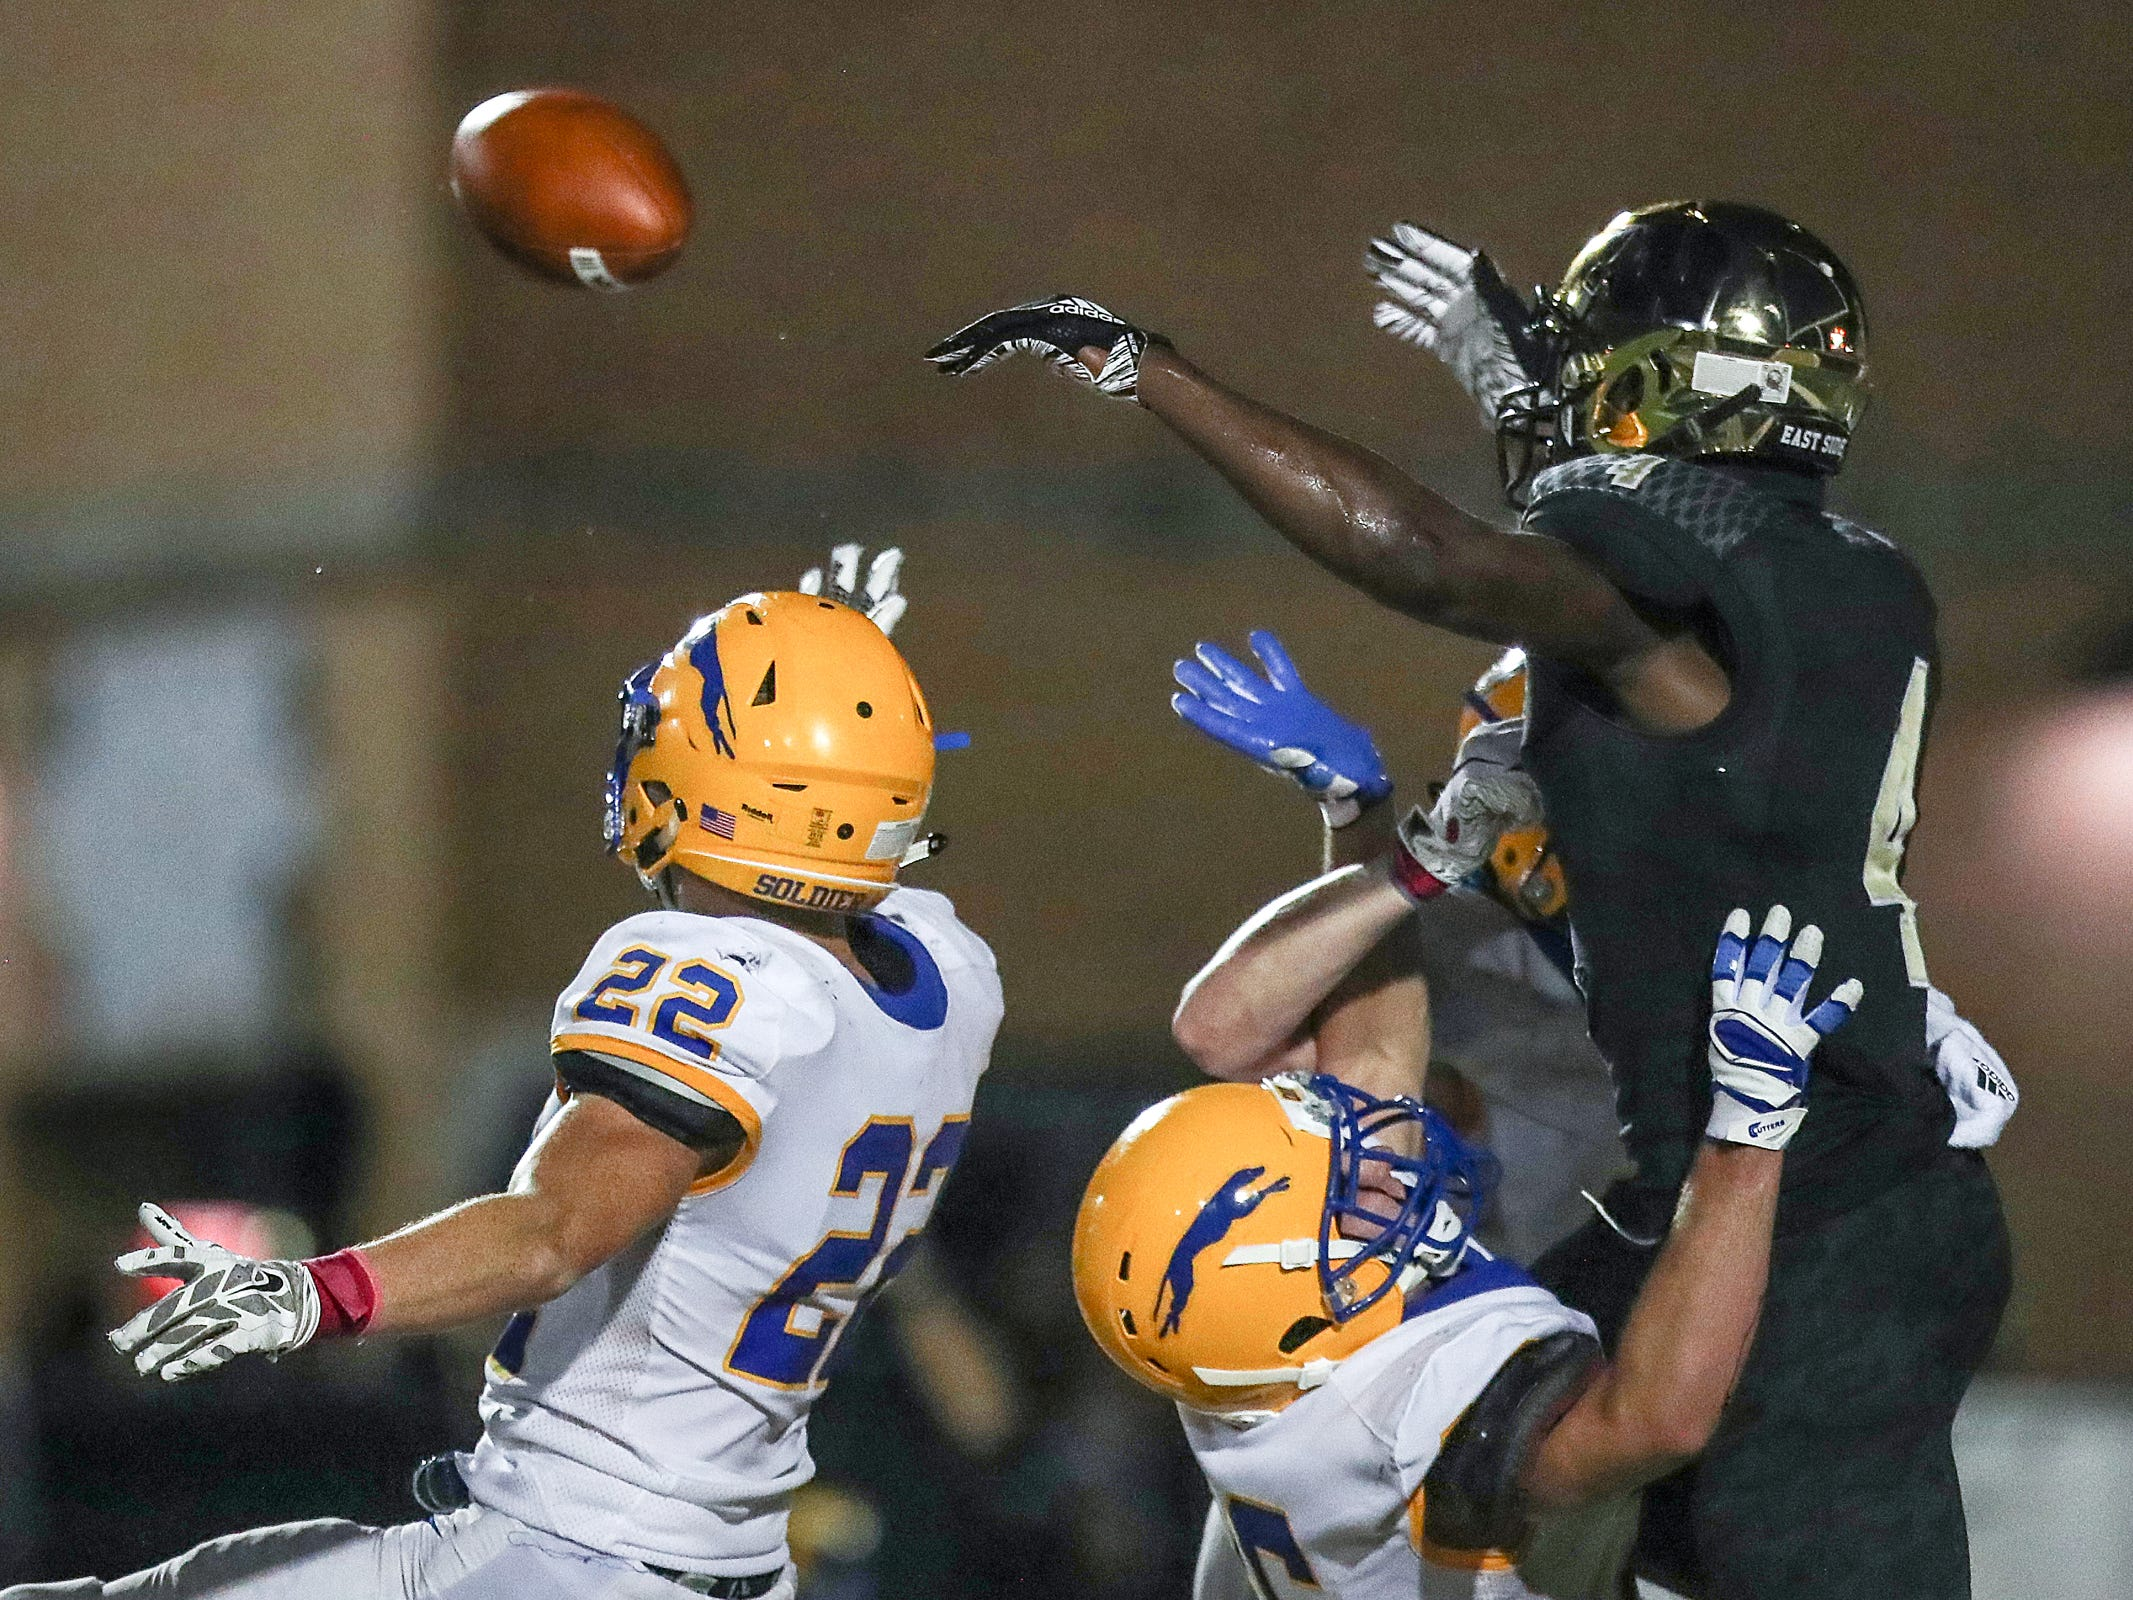 Carmel Greyhounds Nate Frey (22) knocks away a pass intended for Warren Central Warriors wide receiver David Bell (4), forcing a fourth down in the first half of the game at Warren Central High School, Indianapolis, Ind., Friday, Oct. 5, 2018.